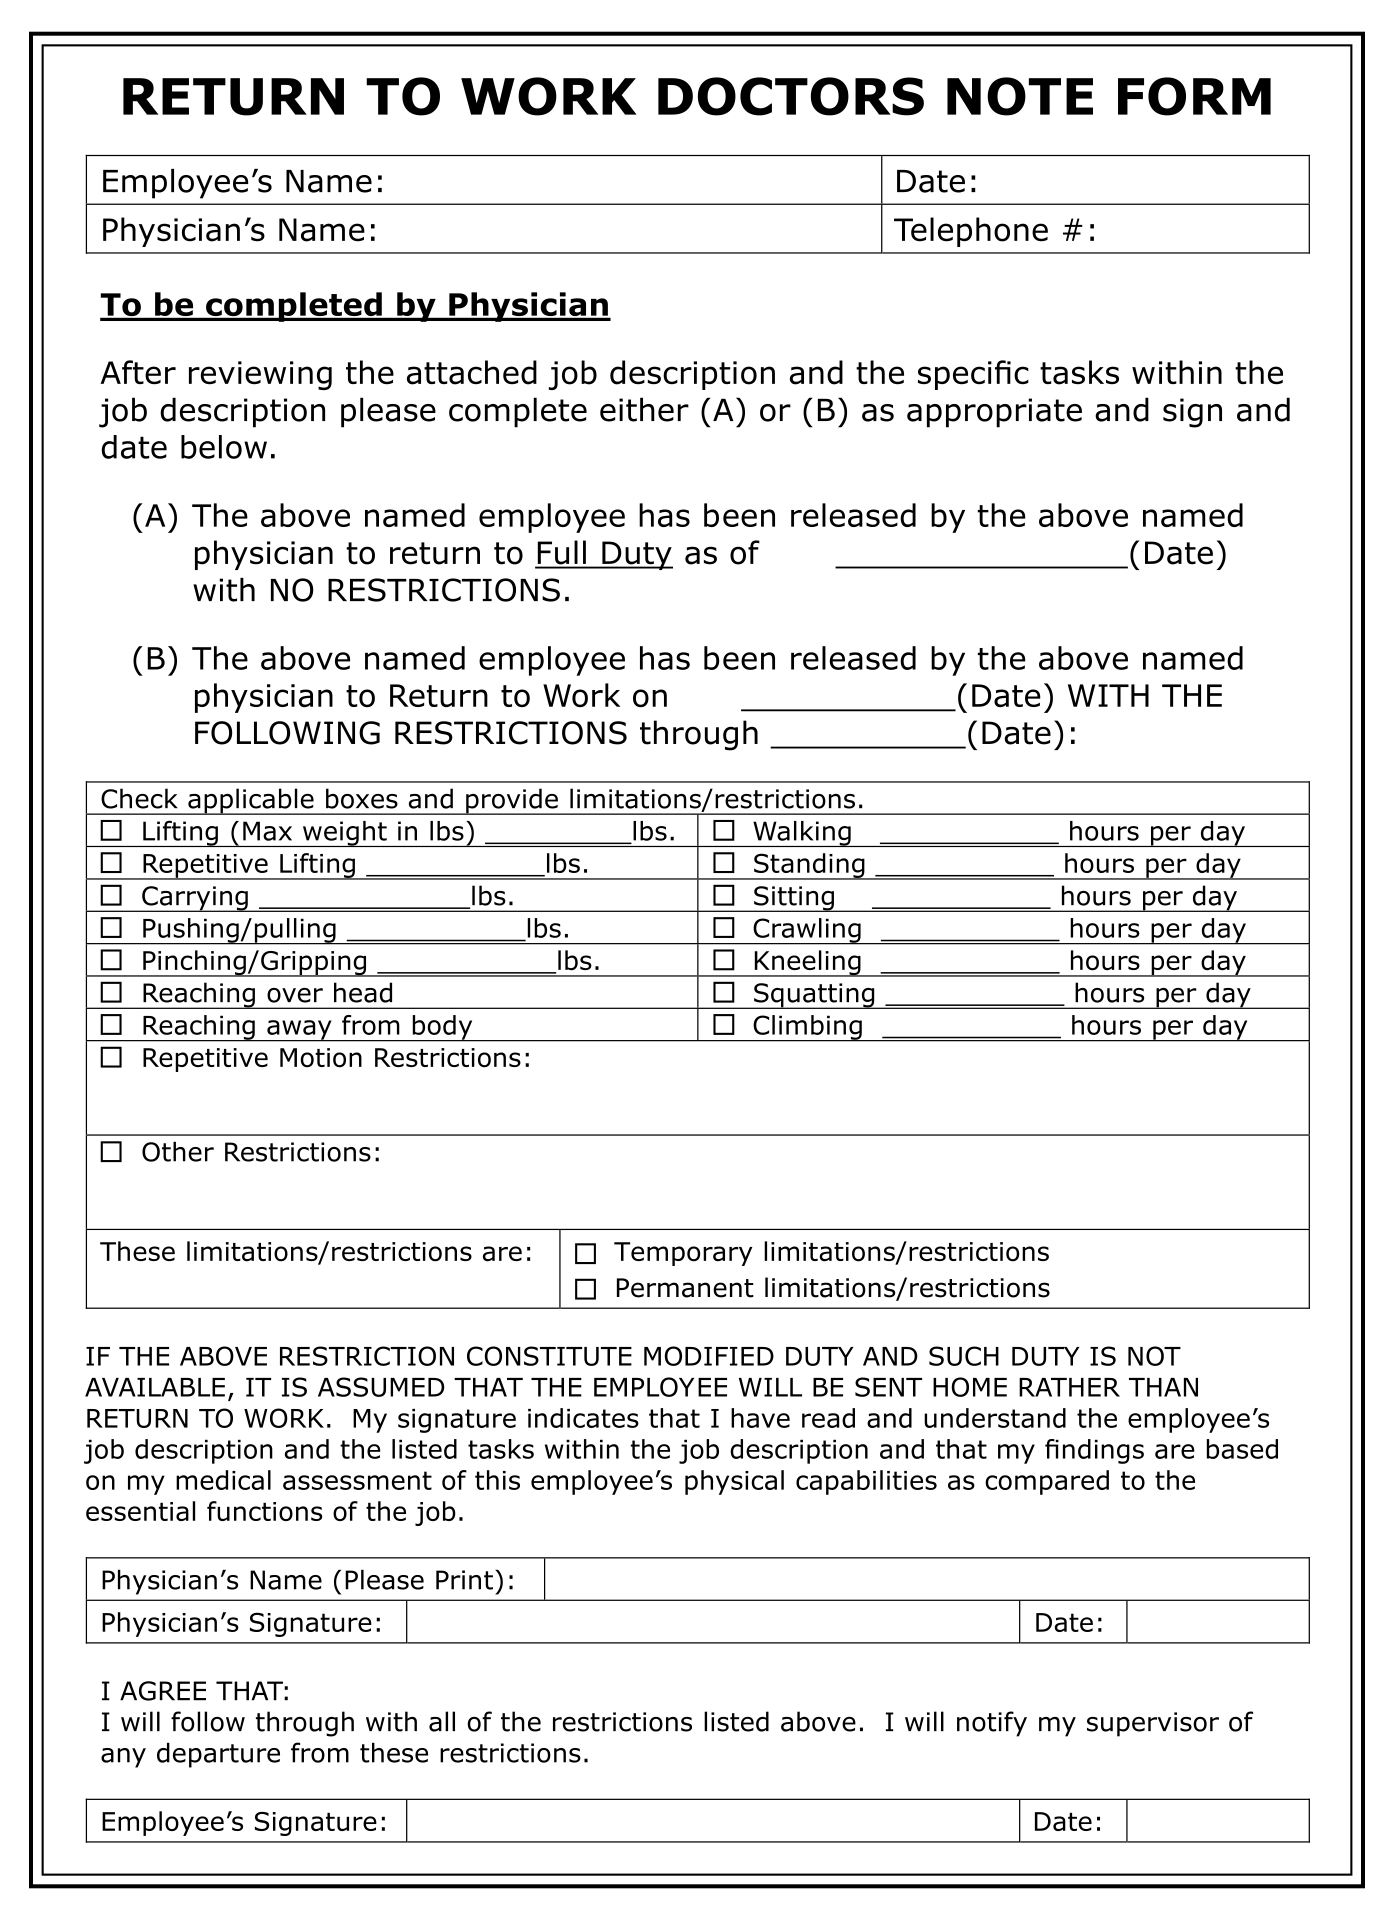 Return to Work Doctors Note Form